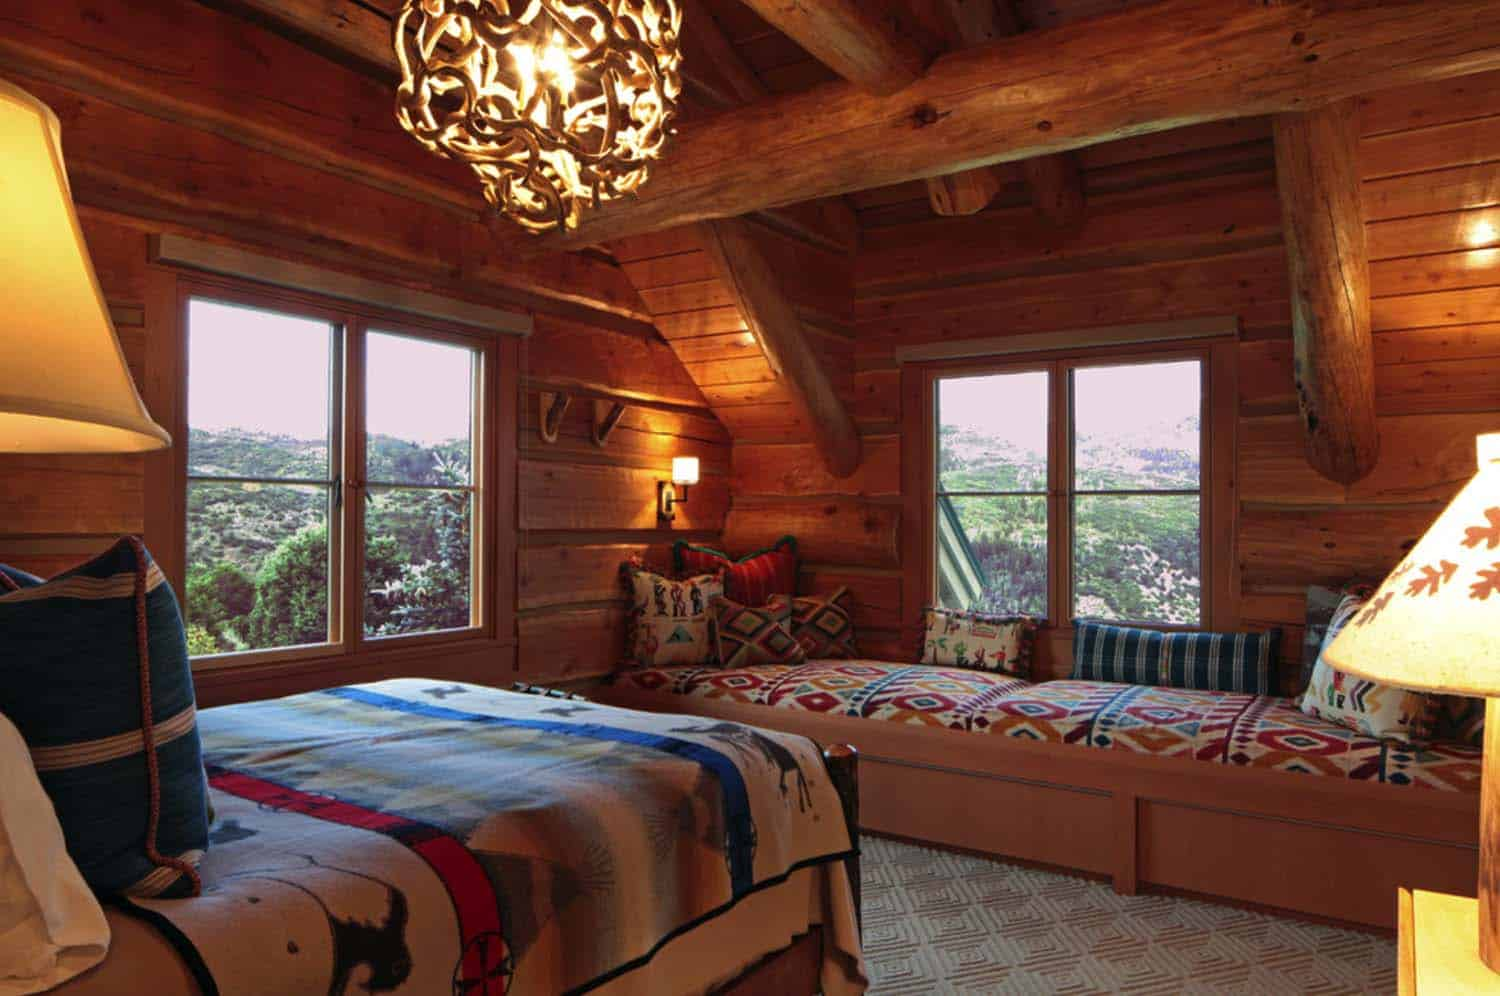 35 gorgeous log cabin style bedrooms to make you drool for Cabin bedroom designs